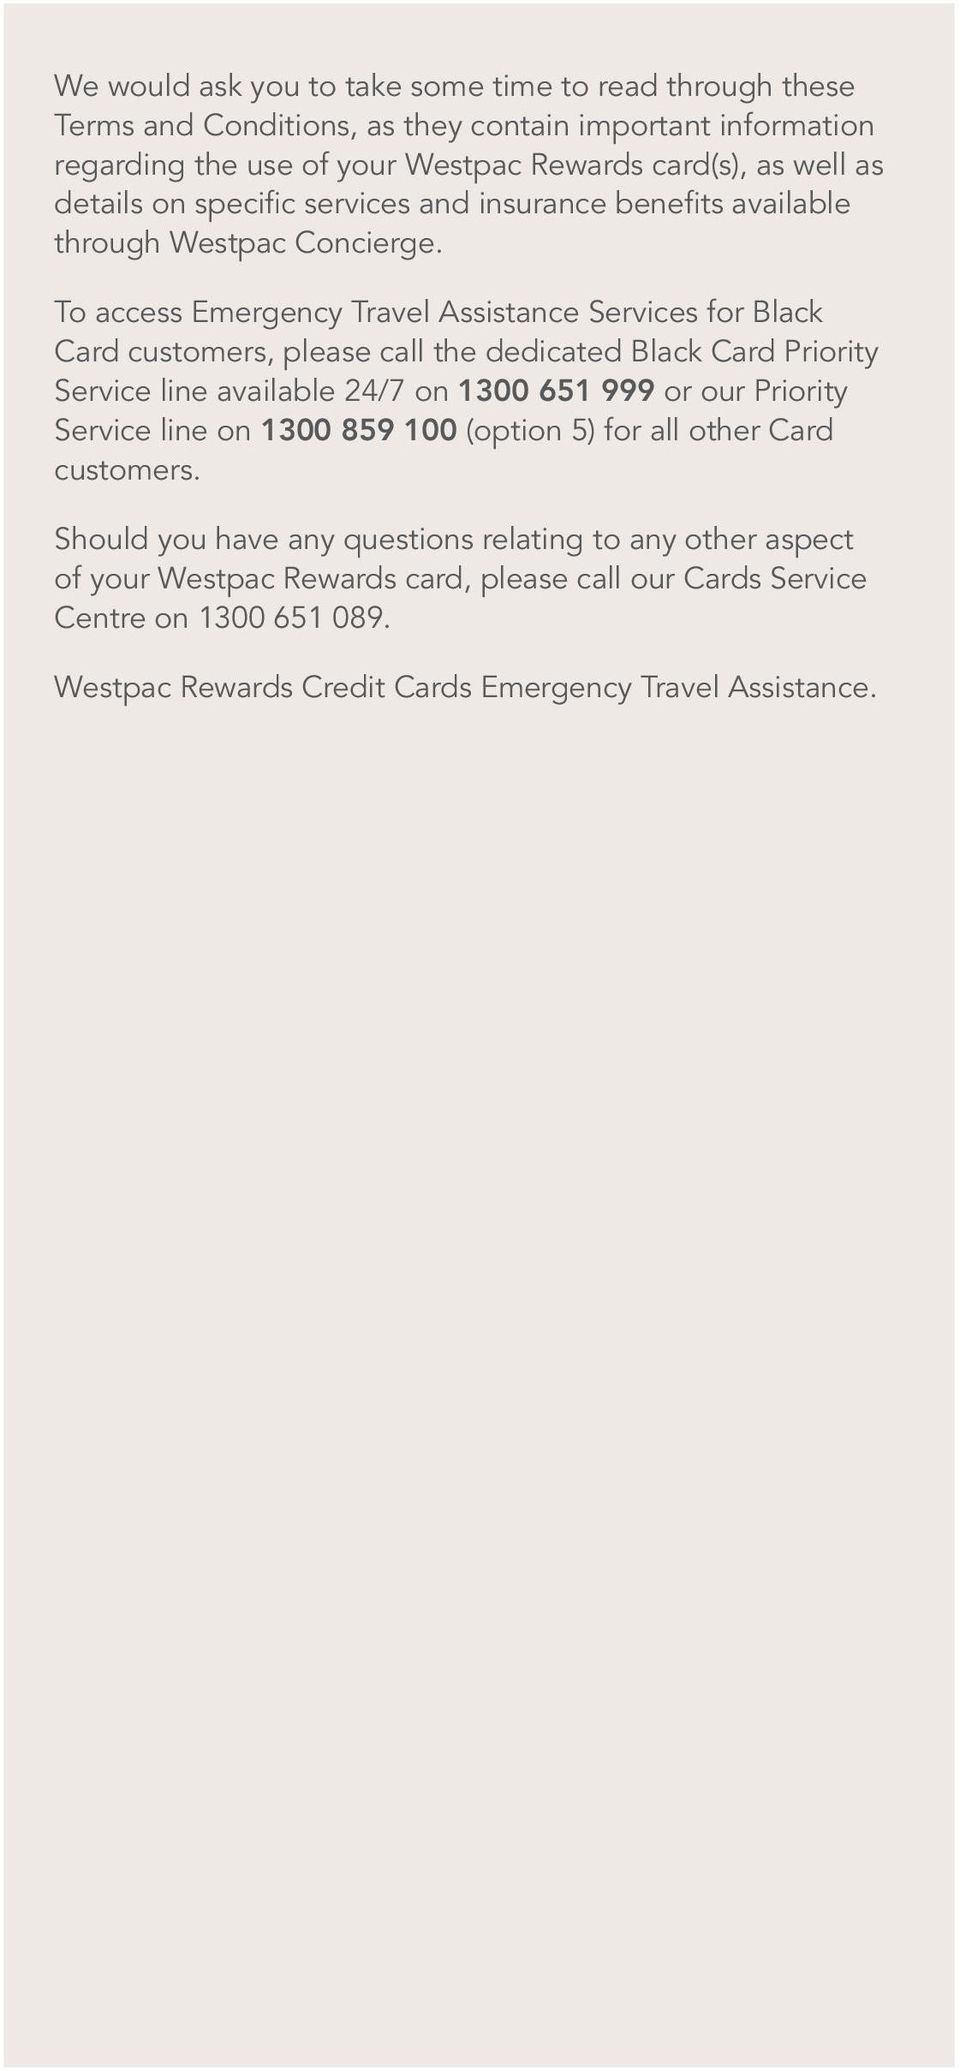 To access Emergency Travel Assistance Services for Black Card customers, please call the dedicated Black Card Priority Service line available 24/7 on 1300 651 999 or our Priority